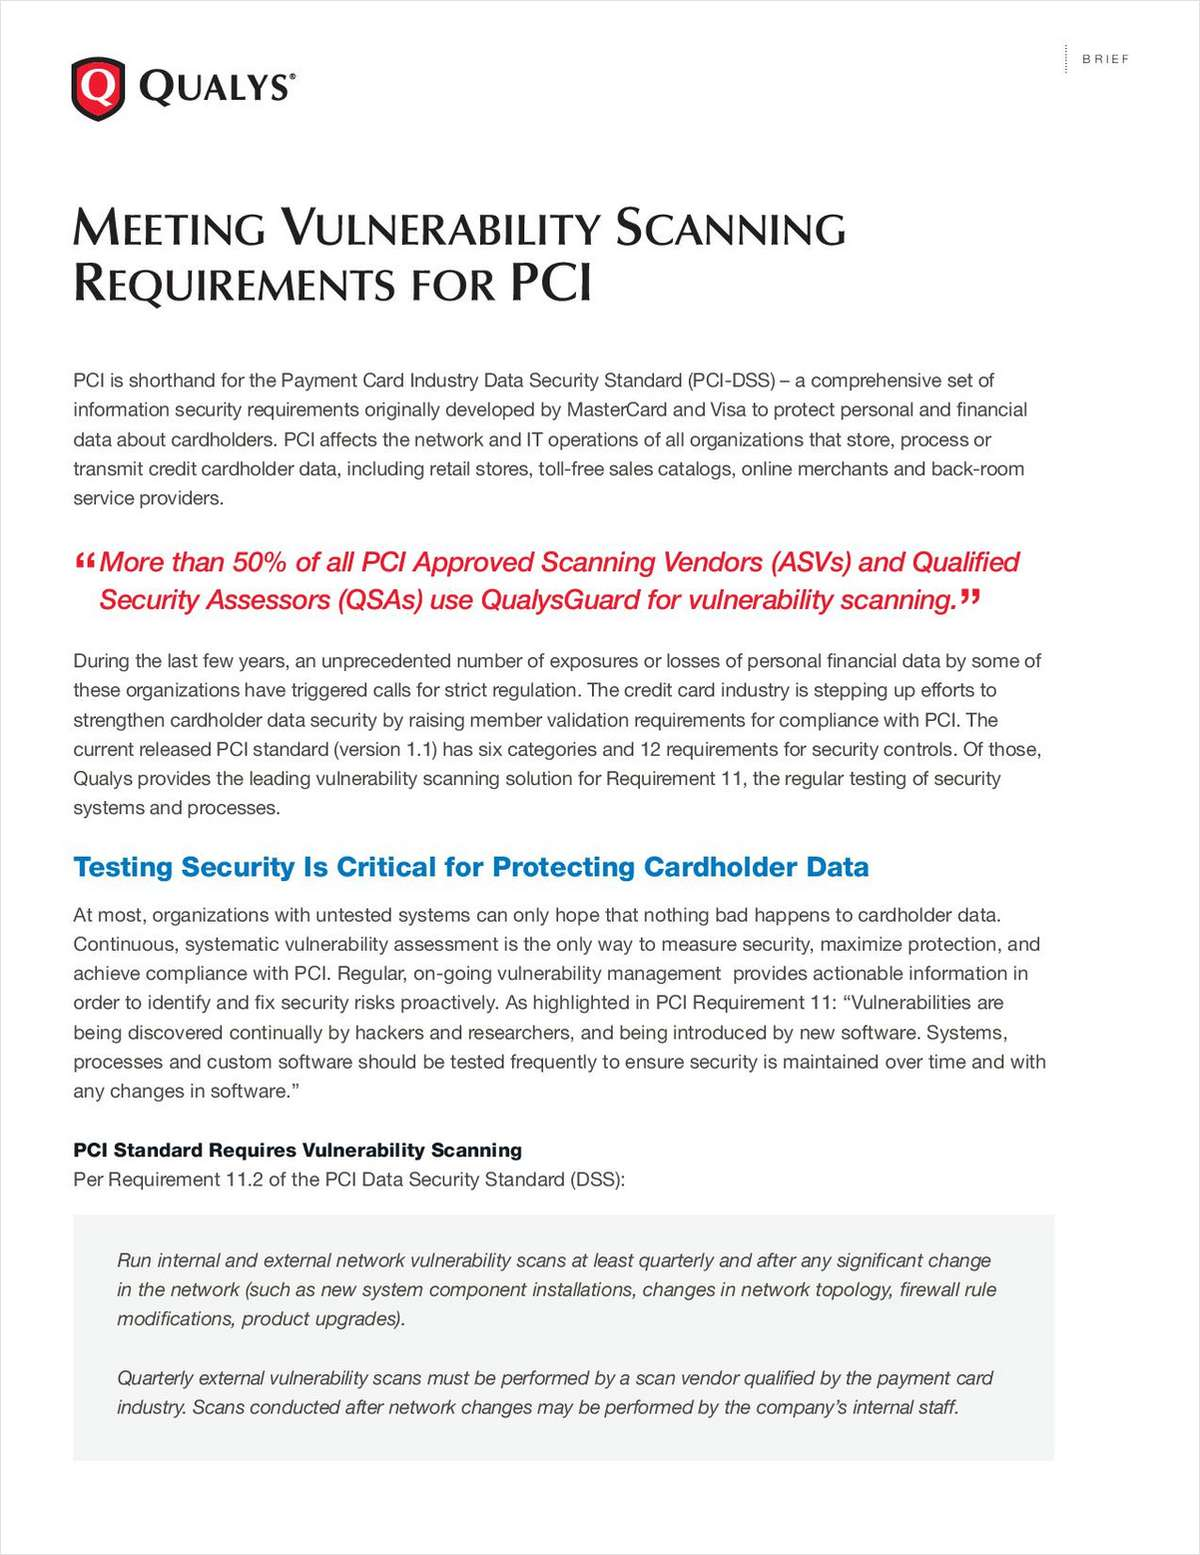 Meeting Vulnerability Scanning Requirements for PCI